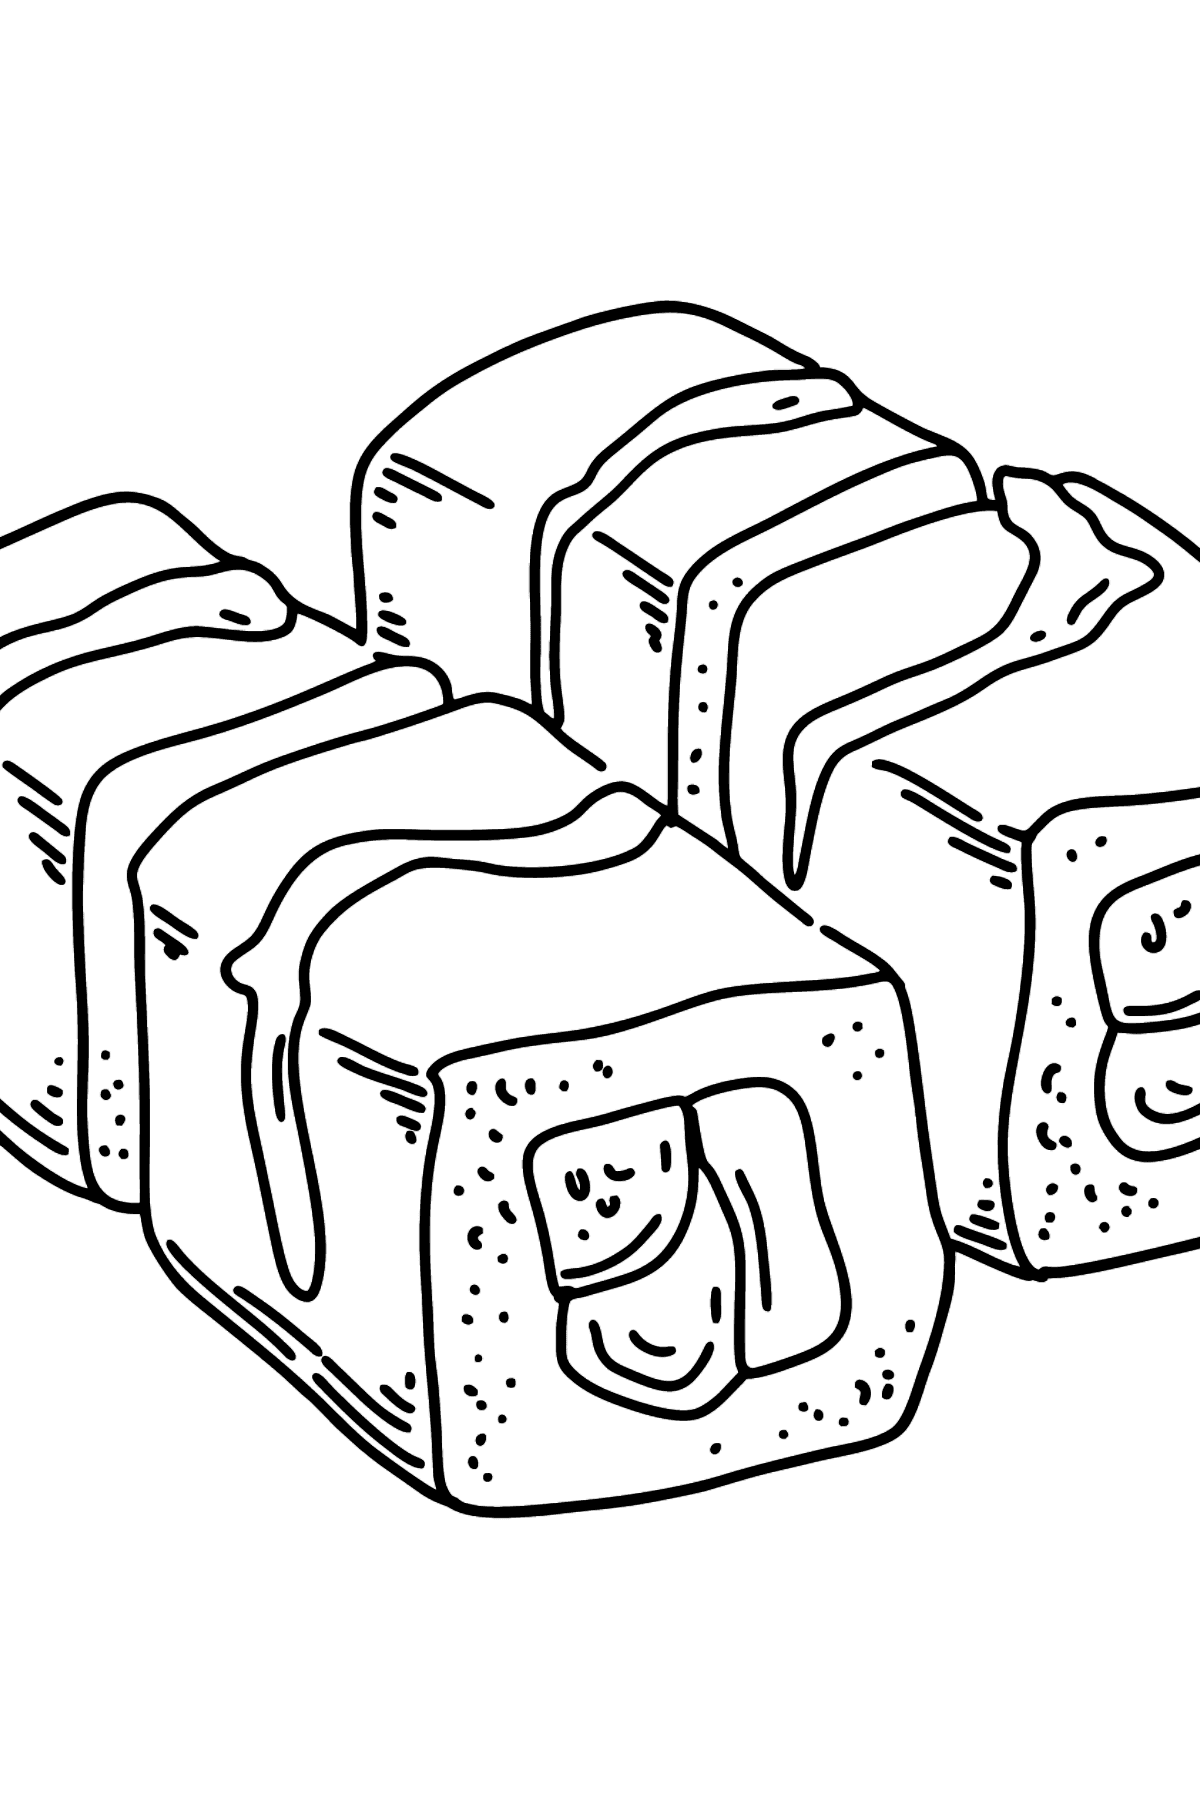 Rolls coloring page - Coloring Pages for Kids